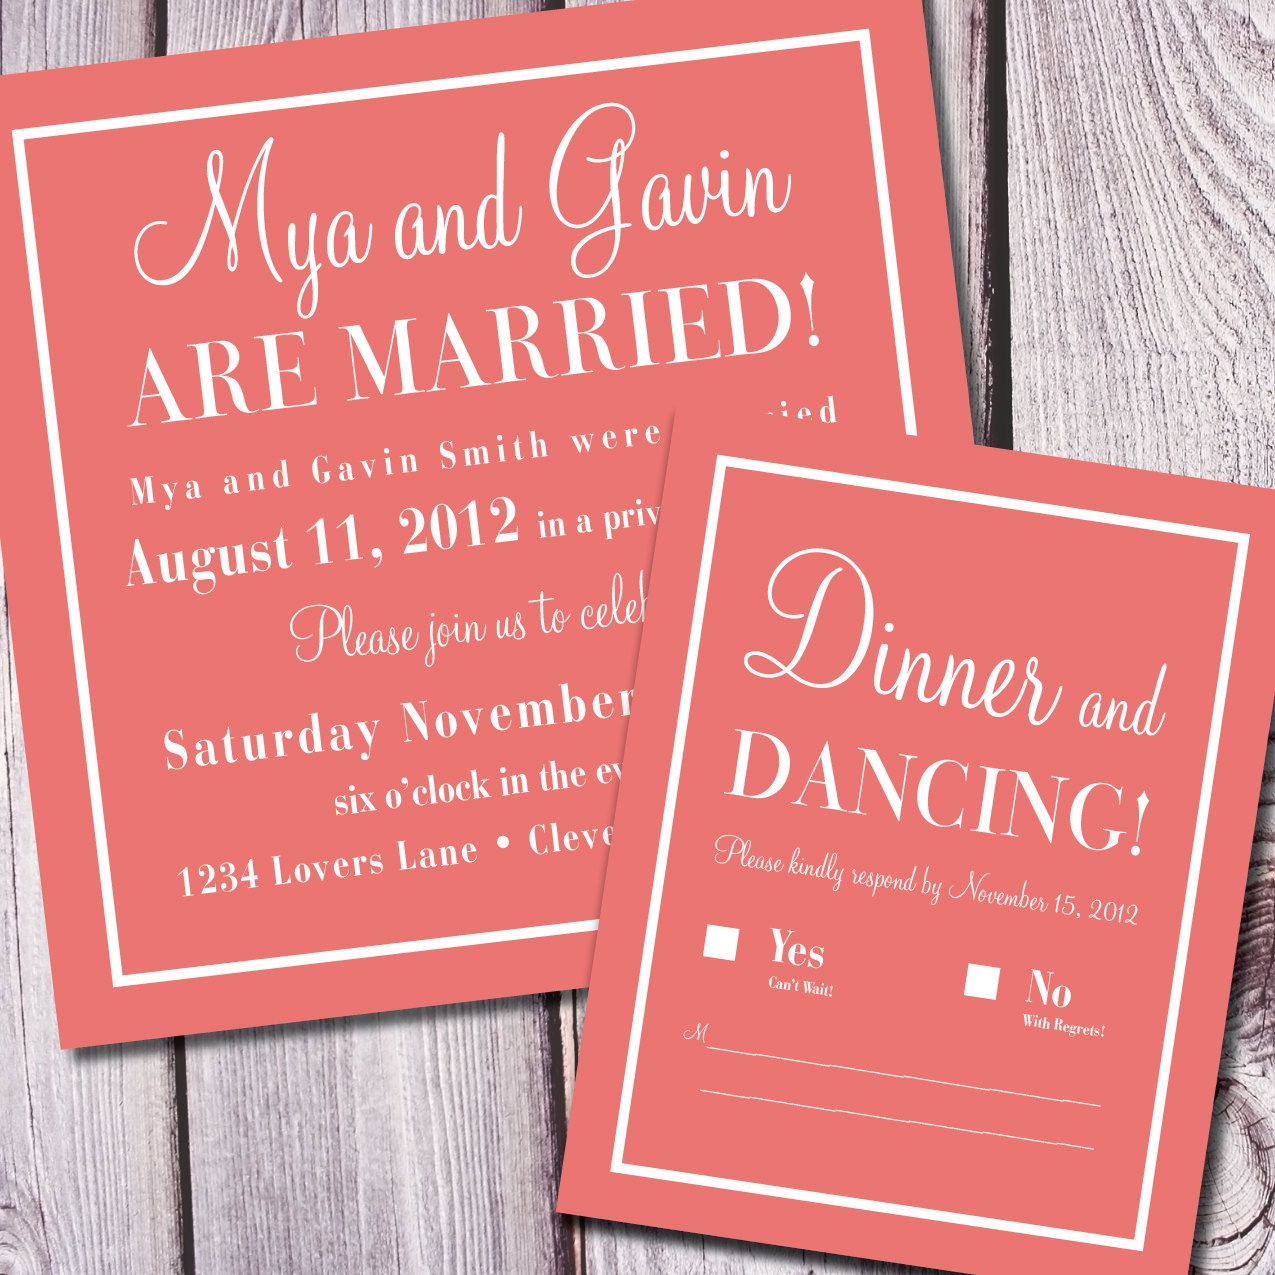 Invitation For Reception After The Wedding: Check Yes Or No Wedding Announcement/Reception Invite